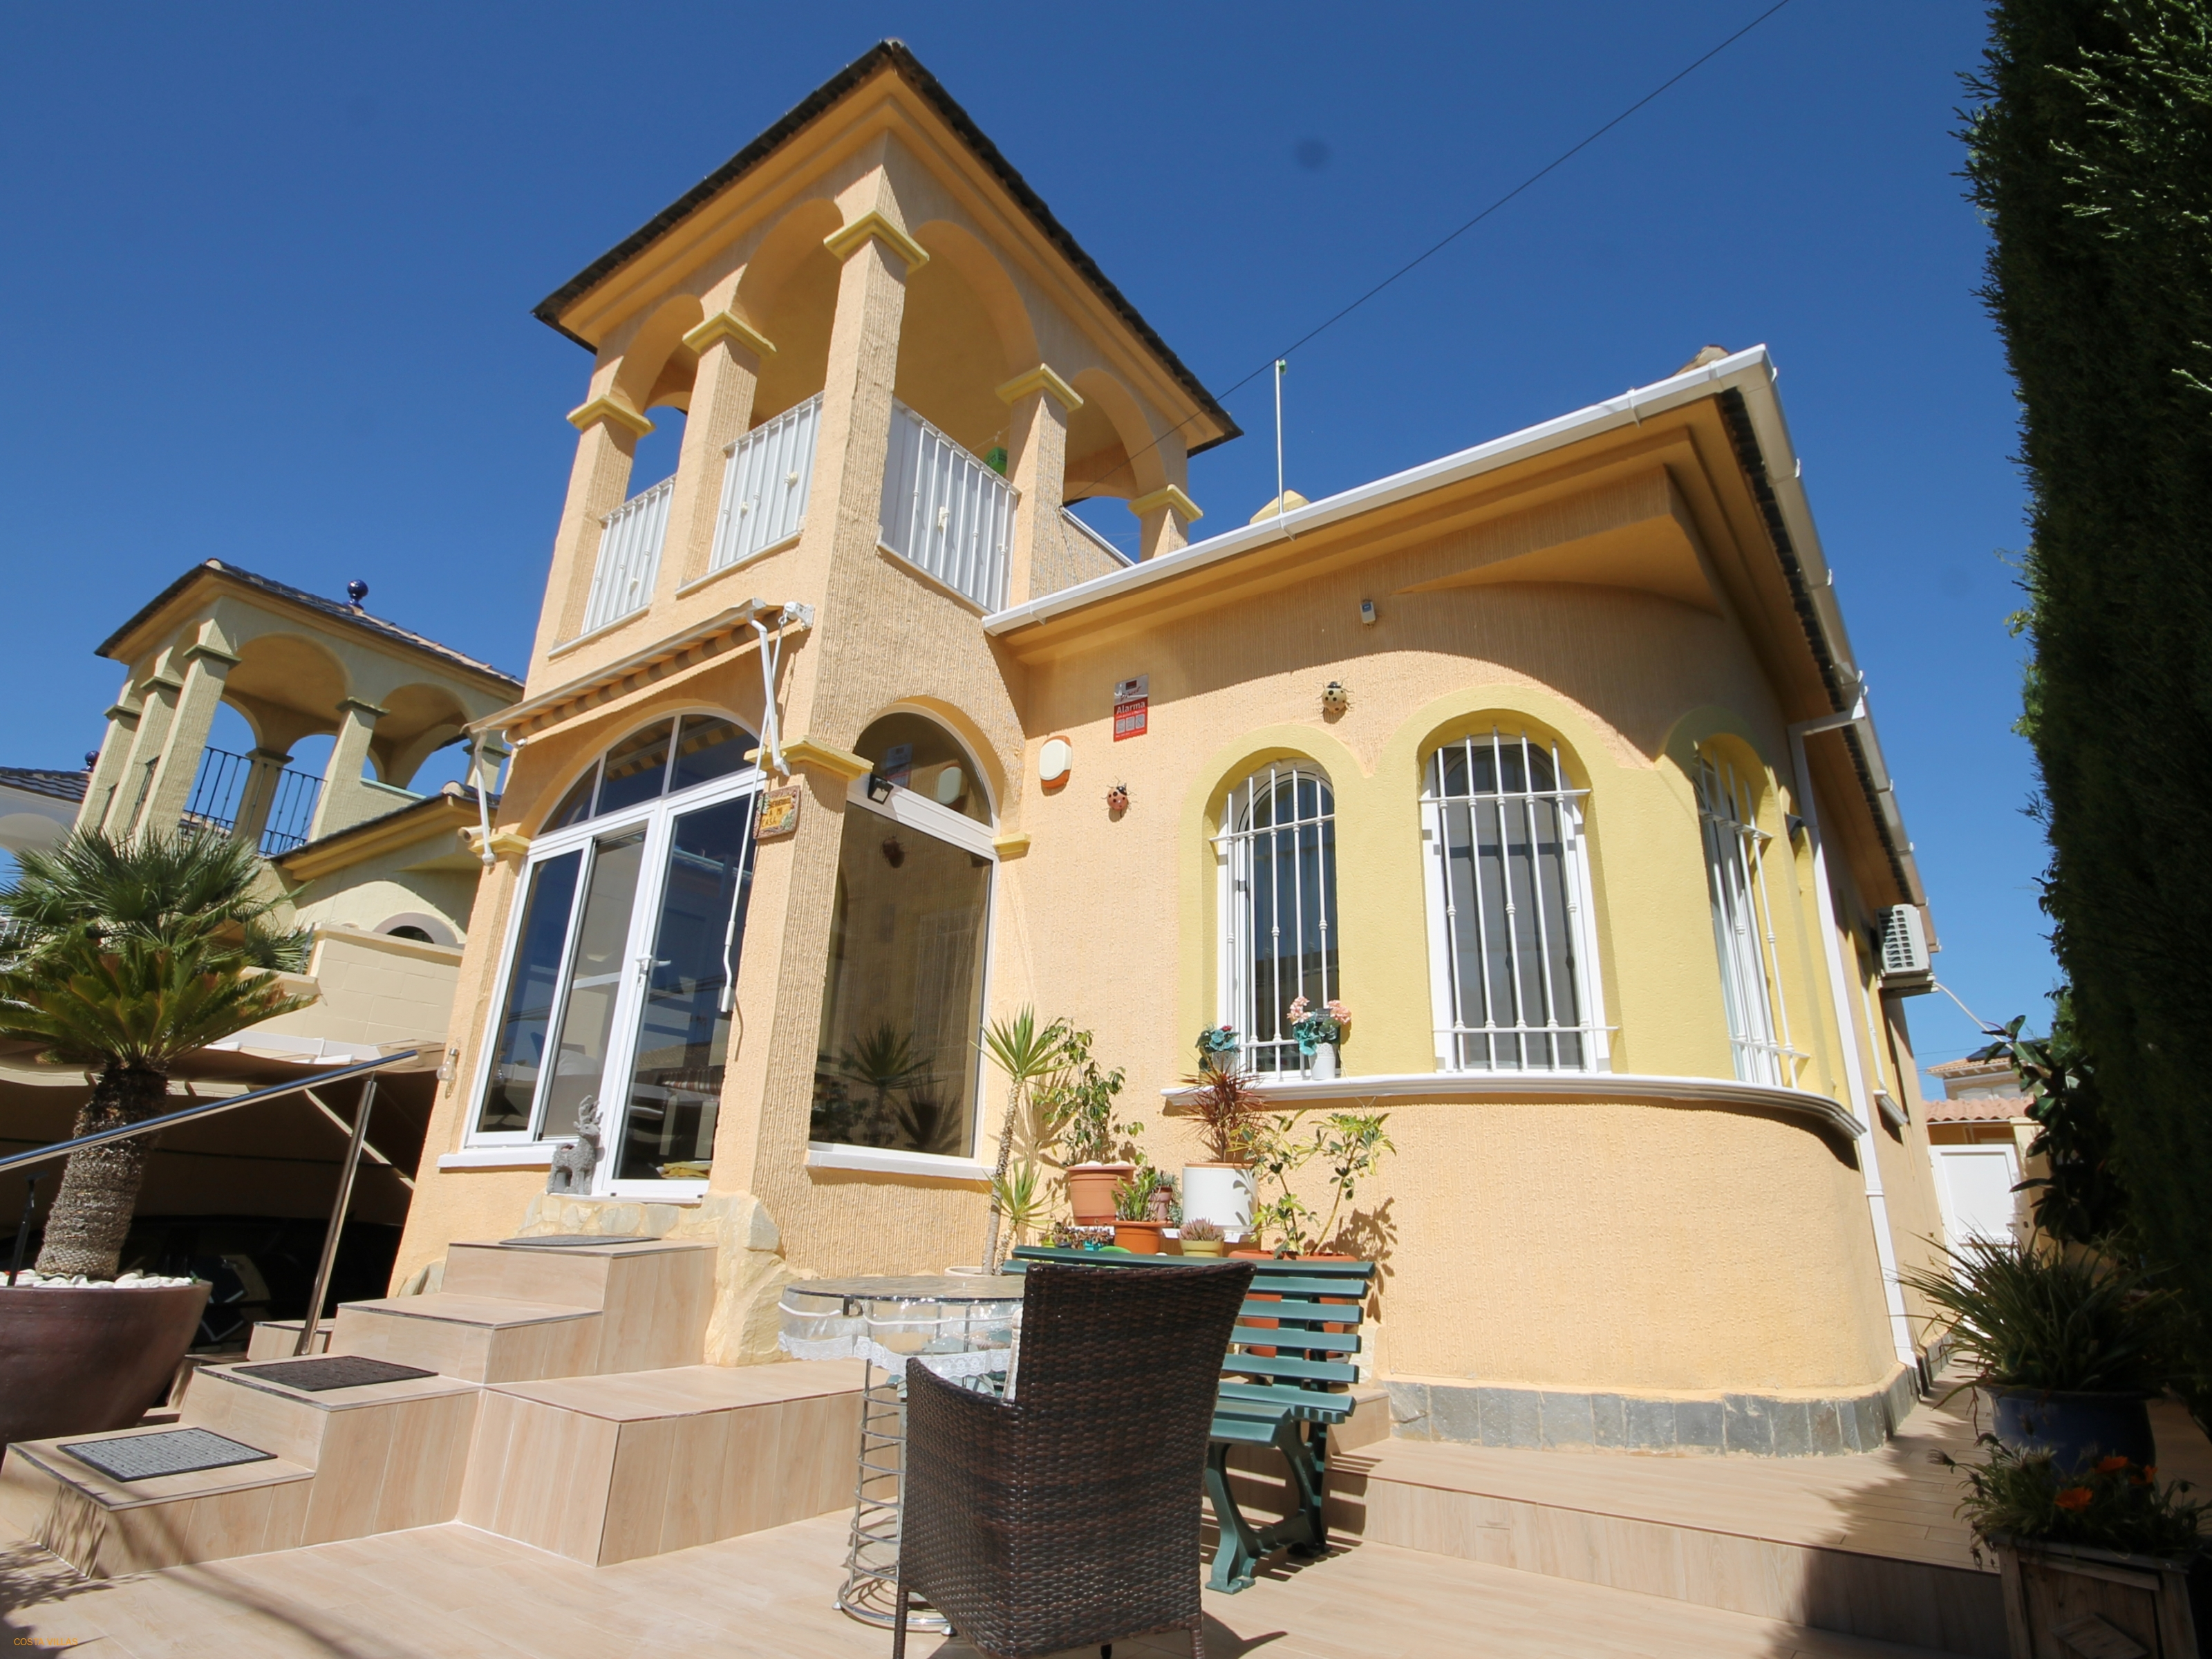 2 Bed Detached villa with plunge pool